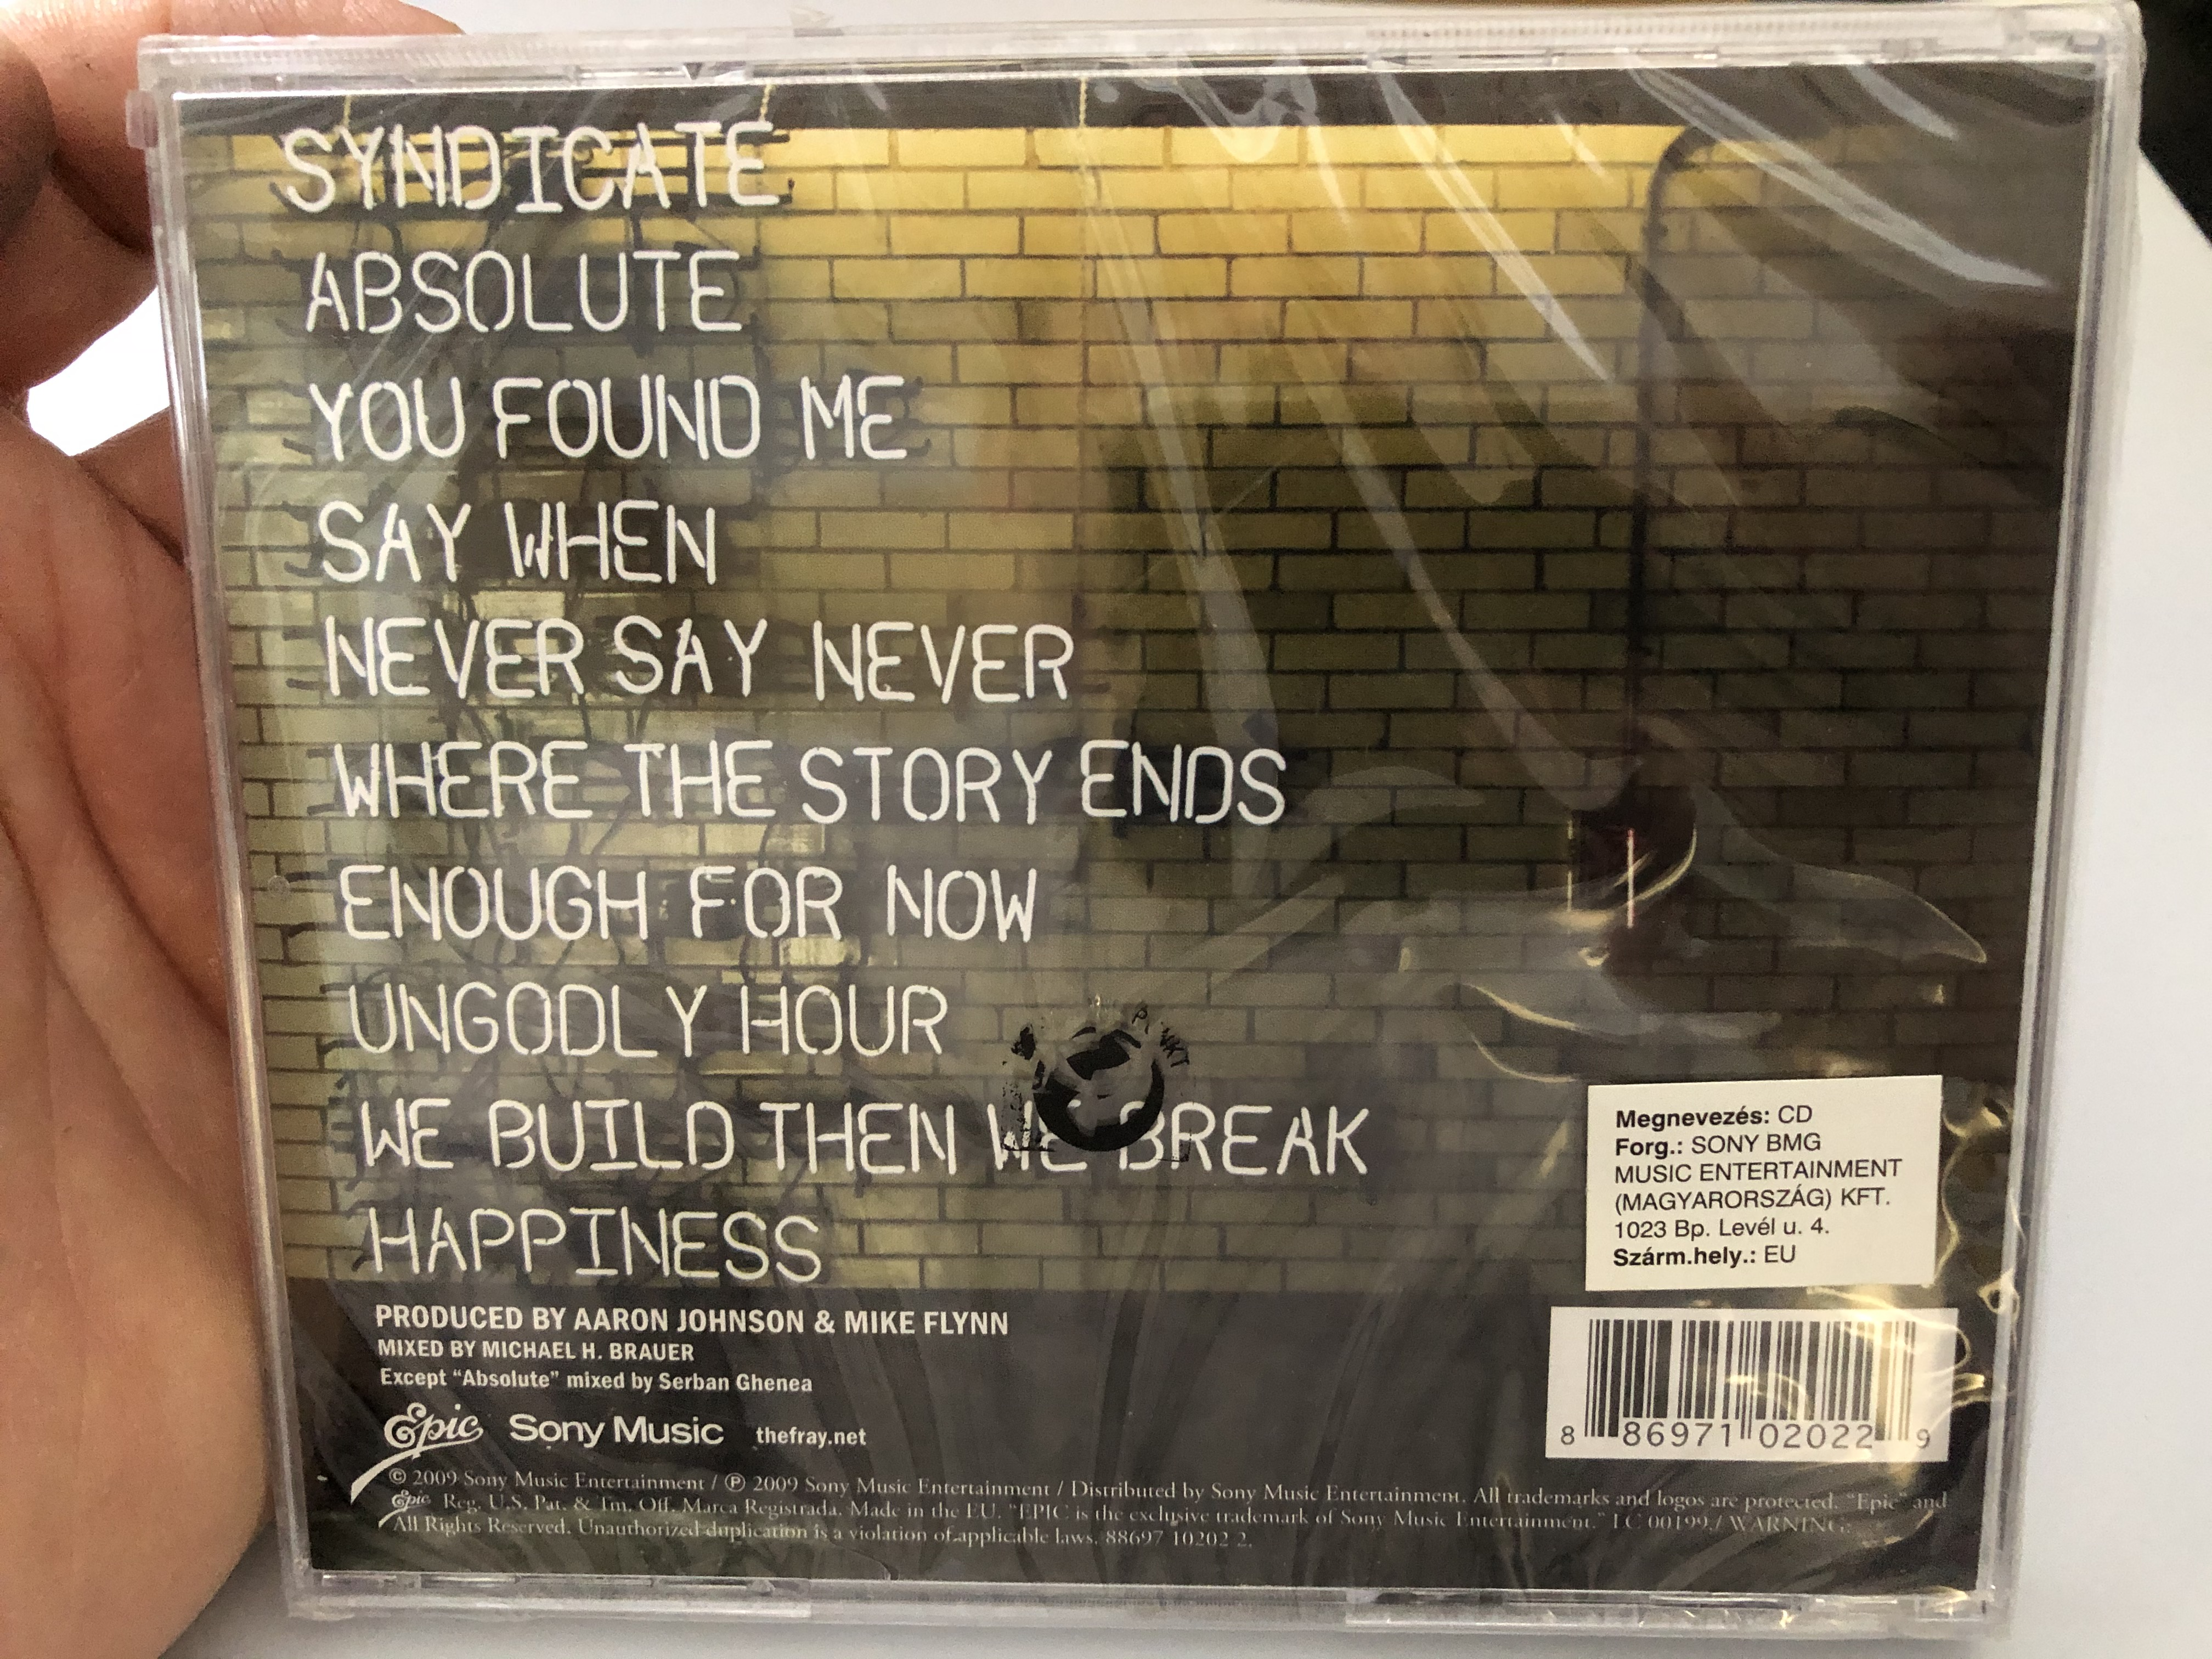 the-fray-the-new-album-featuring-you-found-me-and-never-say-never-epic-audio-cd-2009-88697-10202-2-2-.jpg